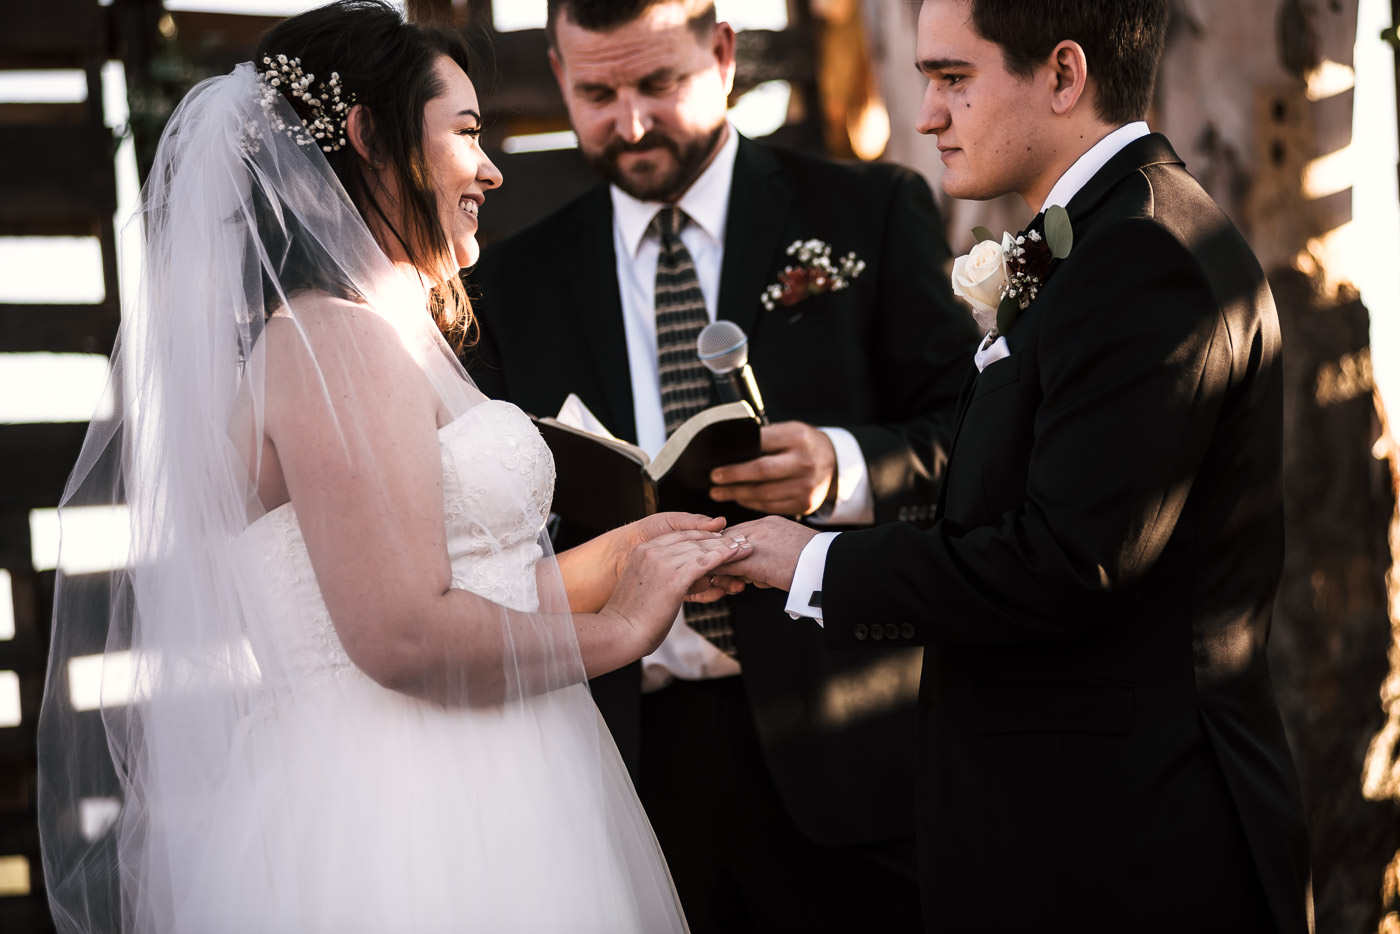 Bride laughs as she places the wedding band on her husbands finger.